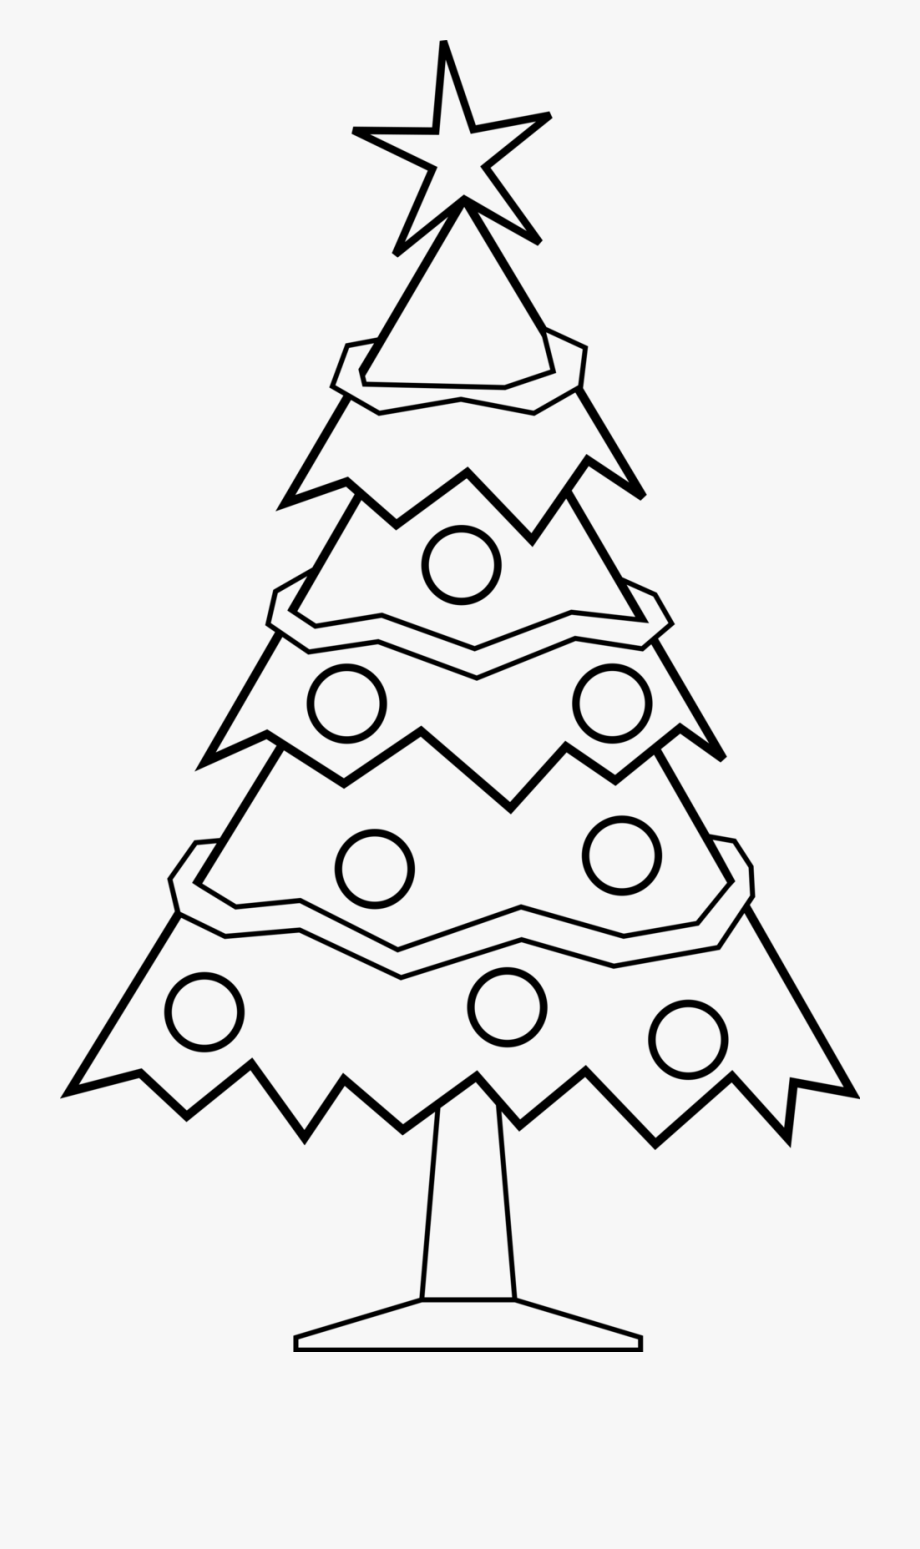 Christmas tree ornaments black and white clipart vector library download Christmas Ornament Black And White Simple Christmas - Christmas Tree ... vector library download